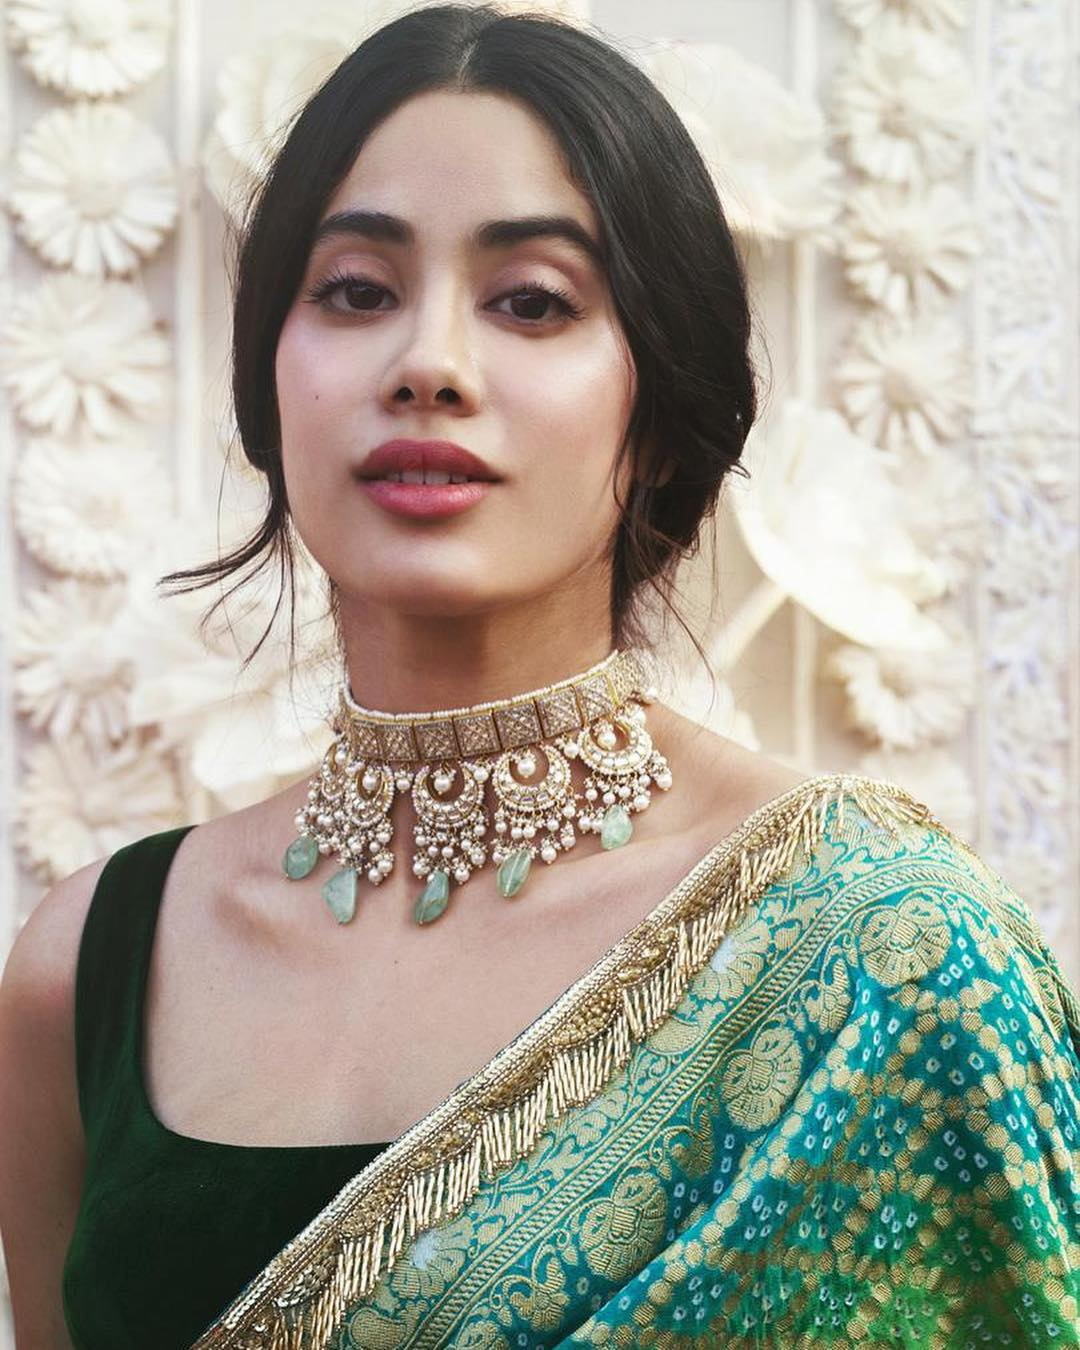 janhvi-kapoor-birthday-best-beauty-makeup-looks %286%29